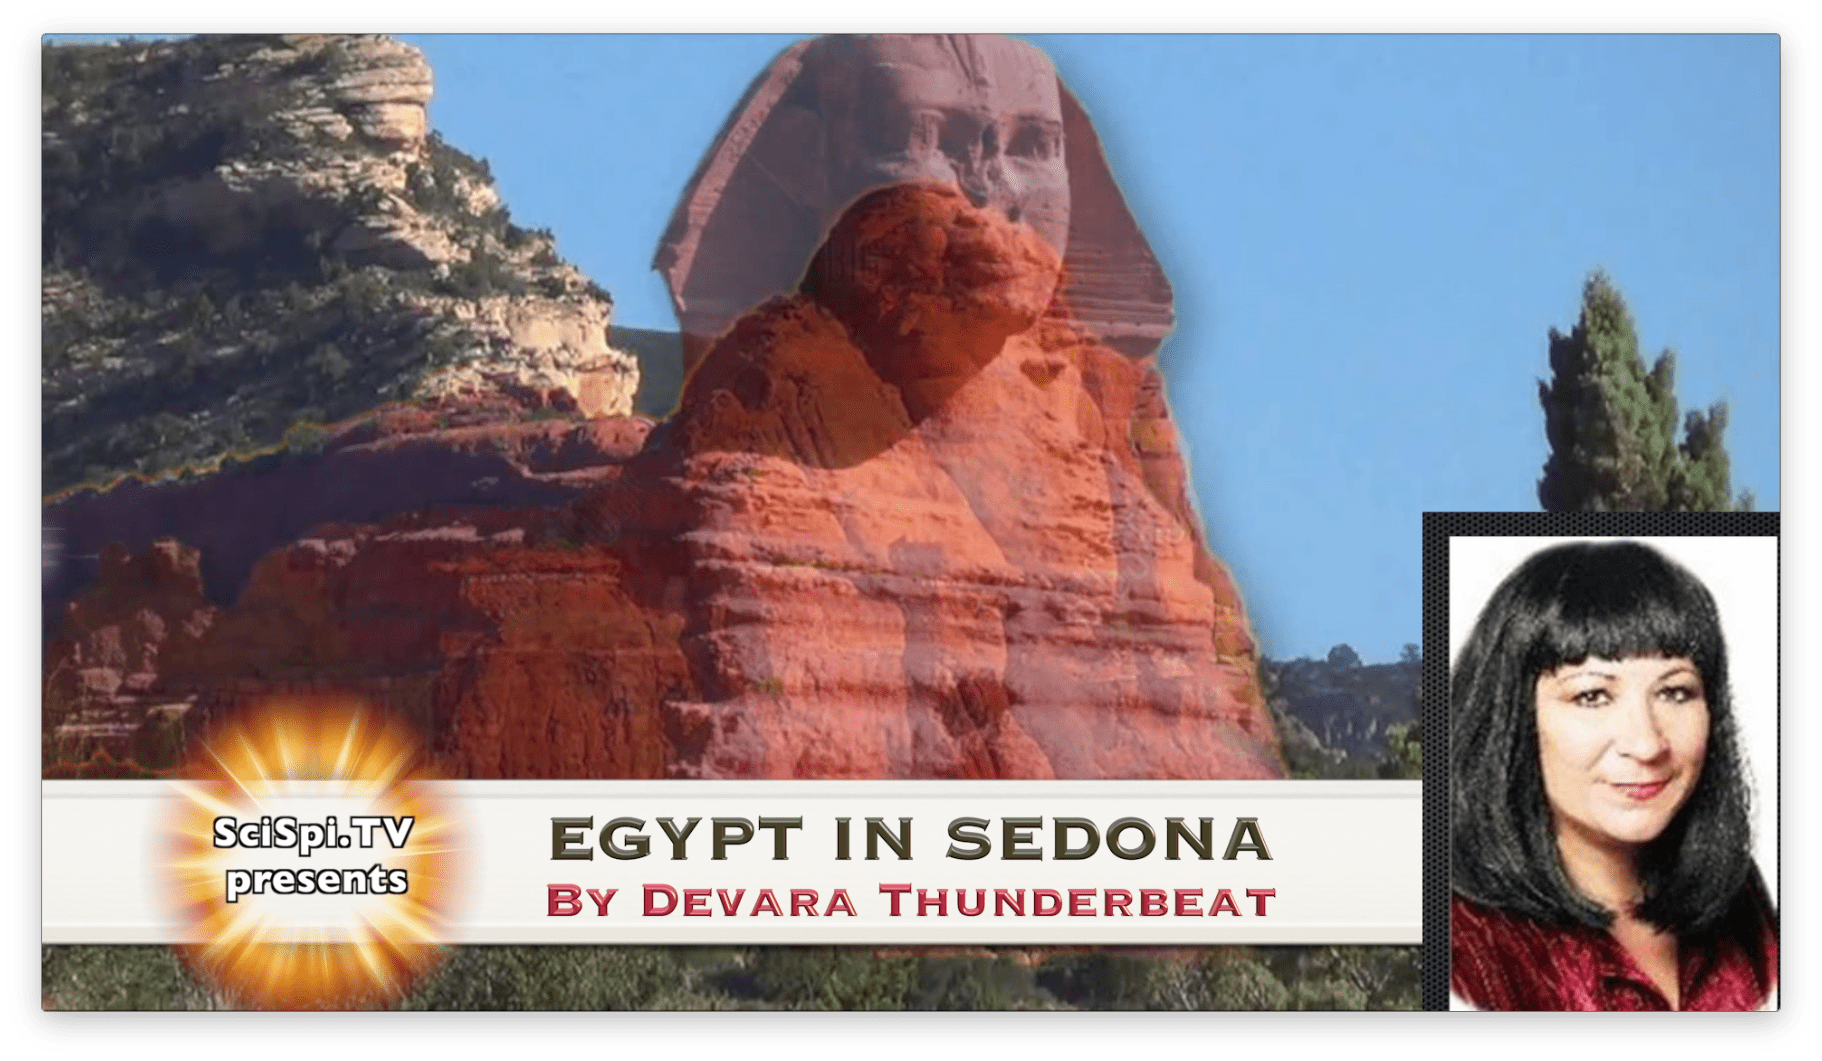 Egypt in Sedona - Devara